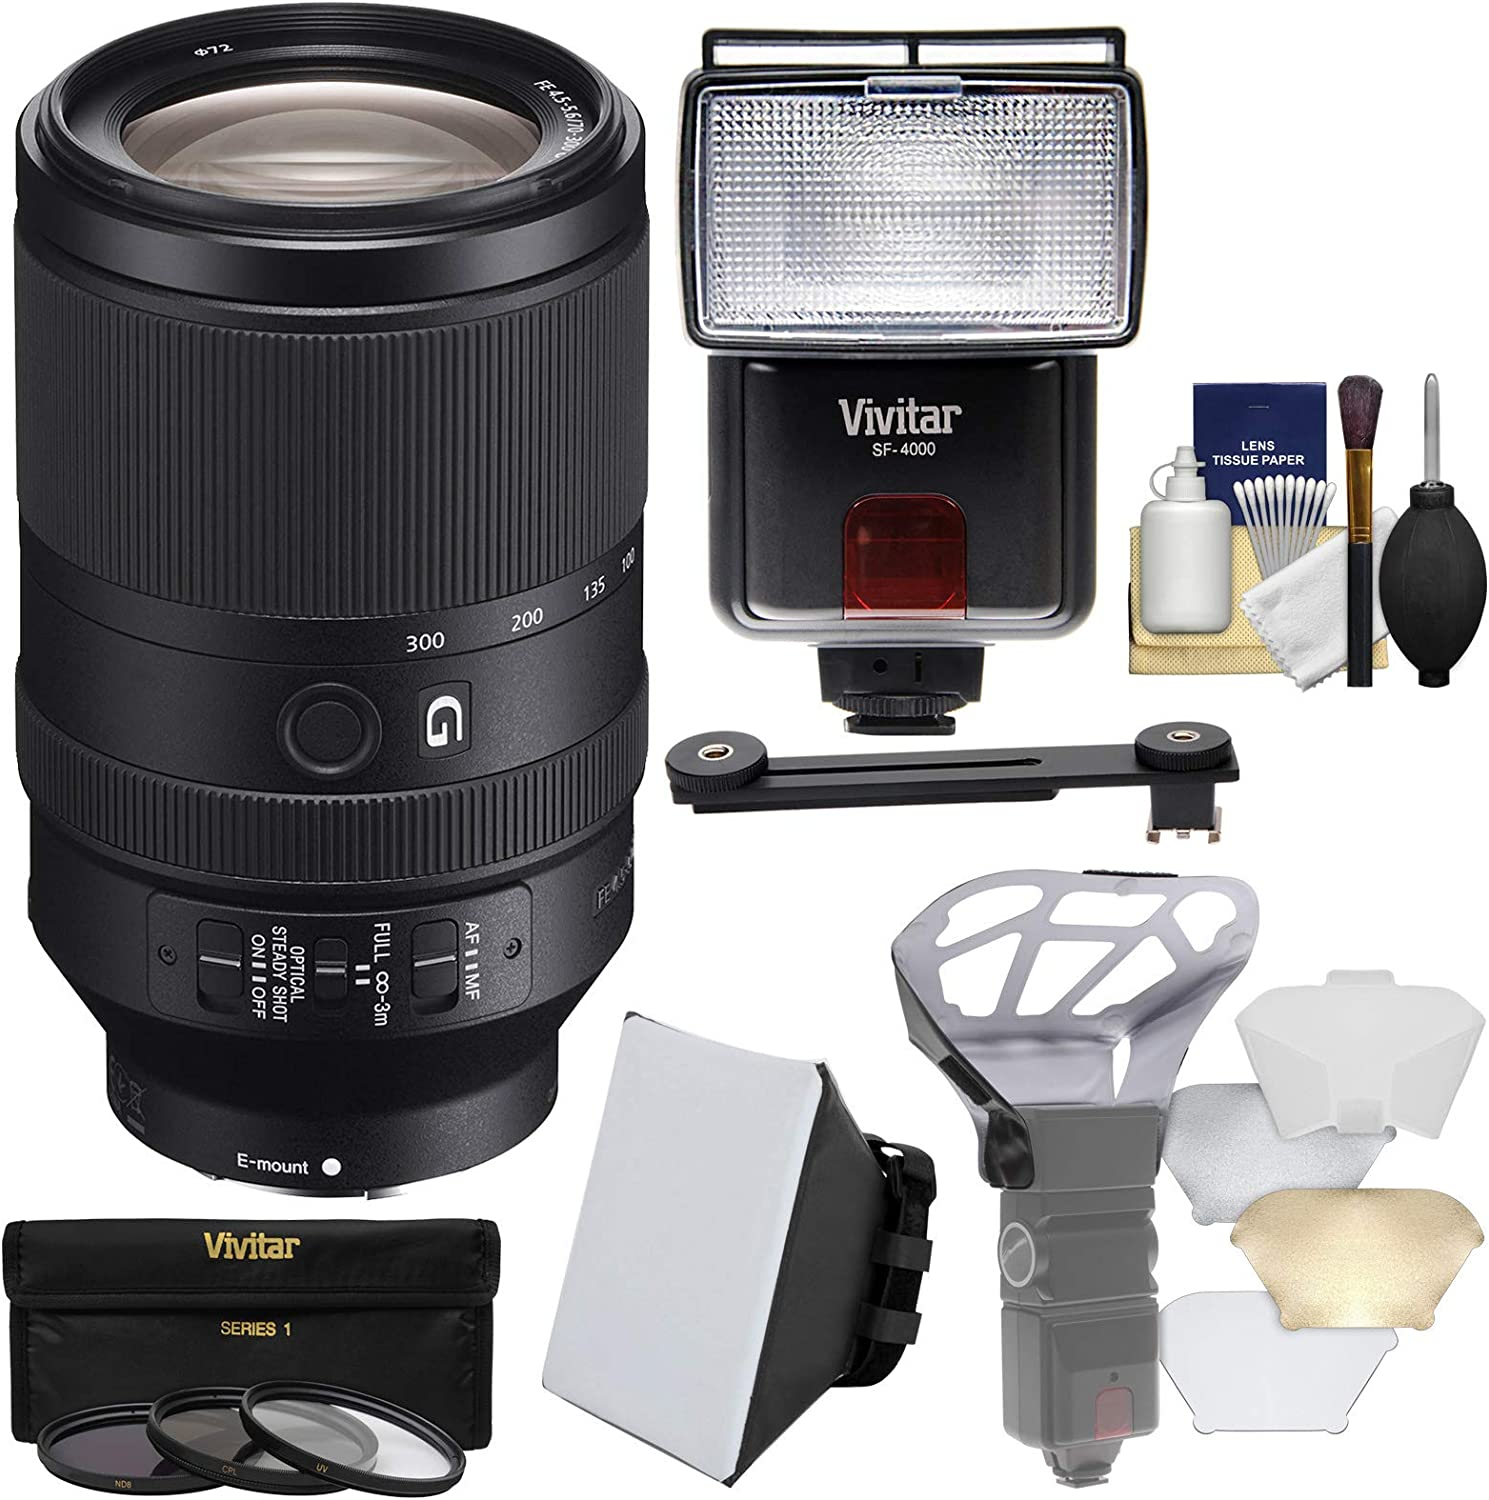 Sony Alpha E-Mount FE 70-300mm f/4.5-5.6 G OSS Zoom Lens with 3 UV/CPL/ND8 Filters + Flash + Diffusers + Soft Box + Kit